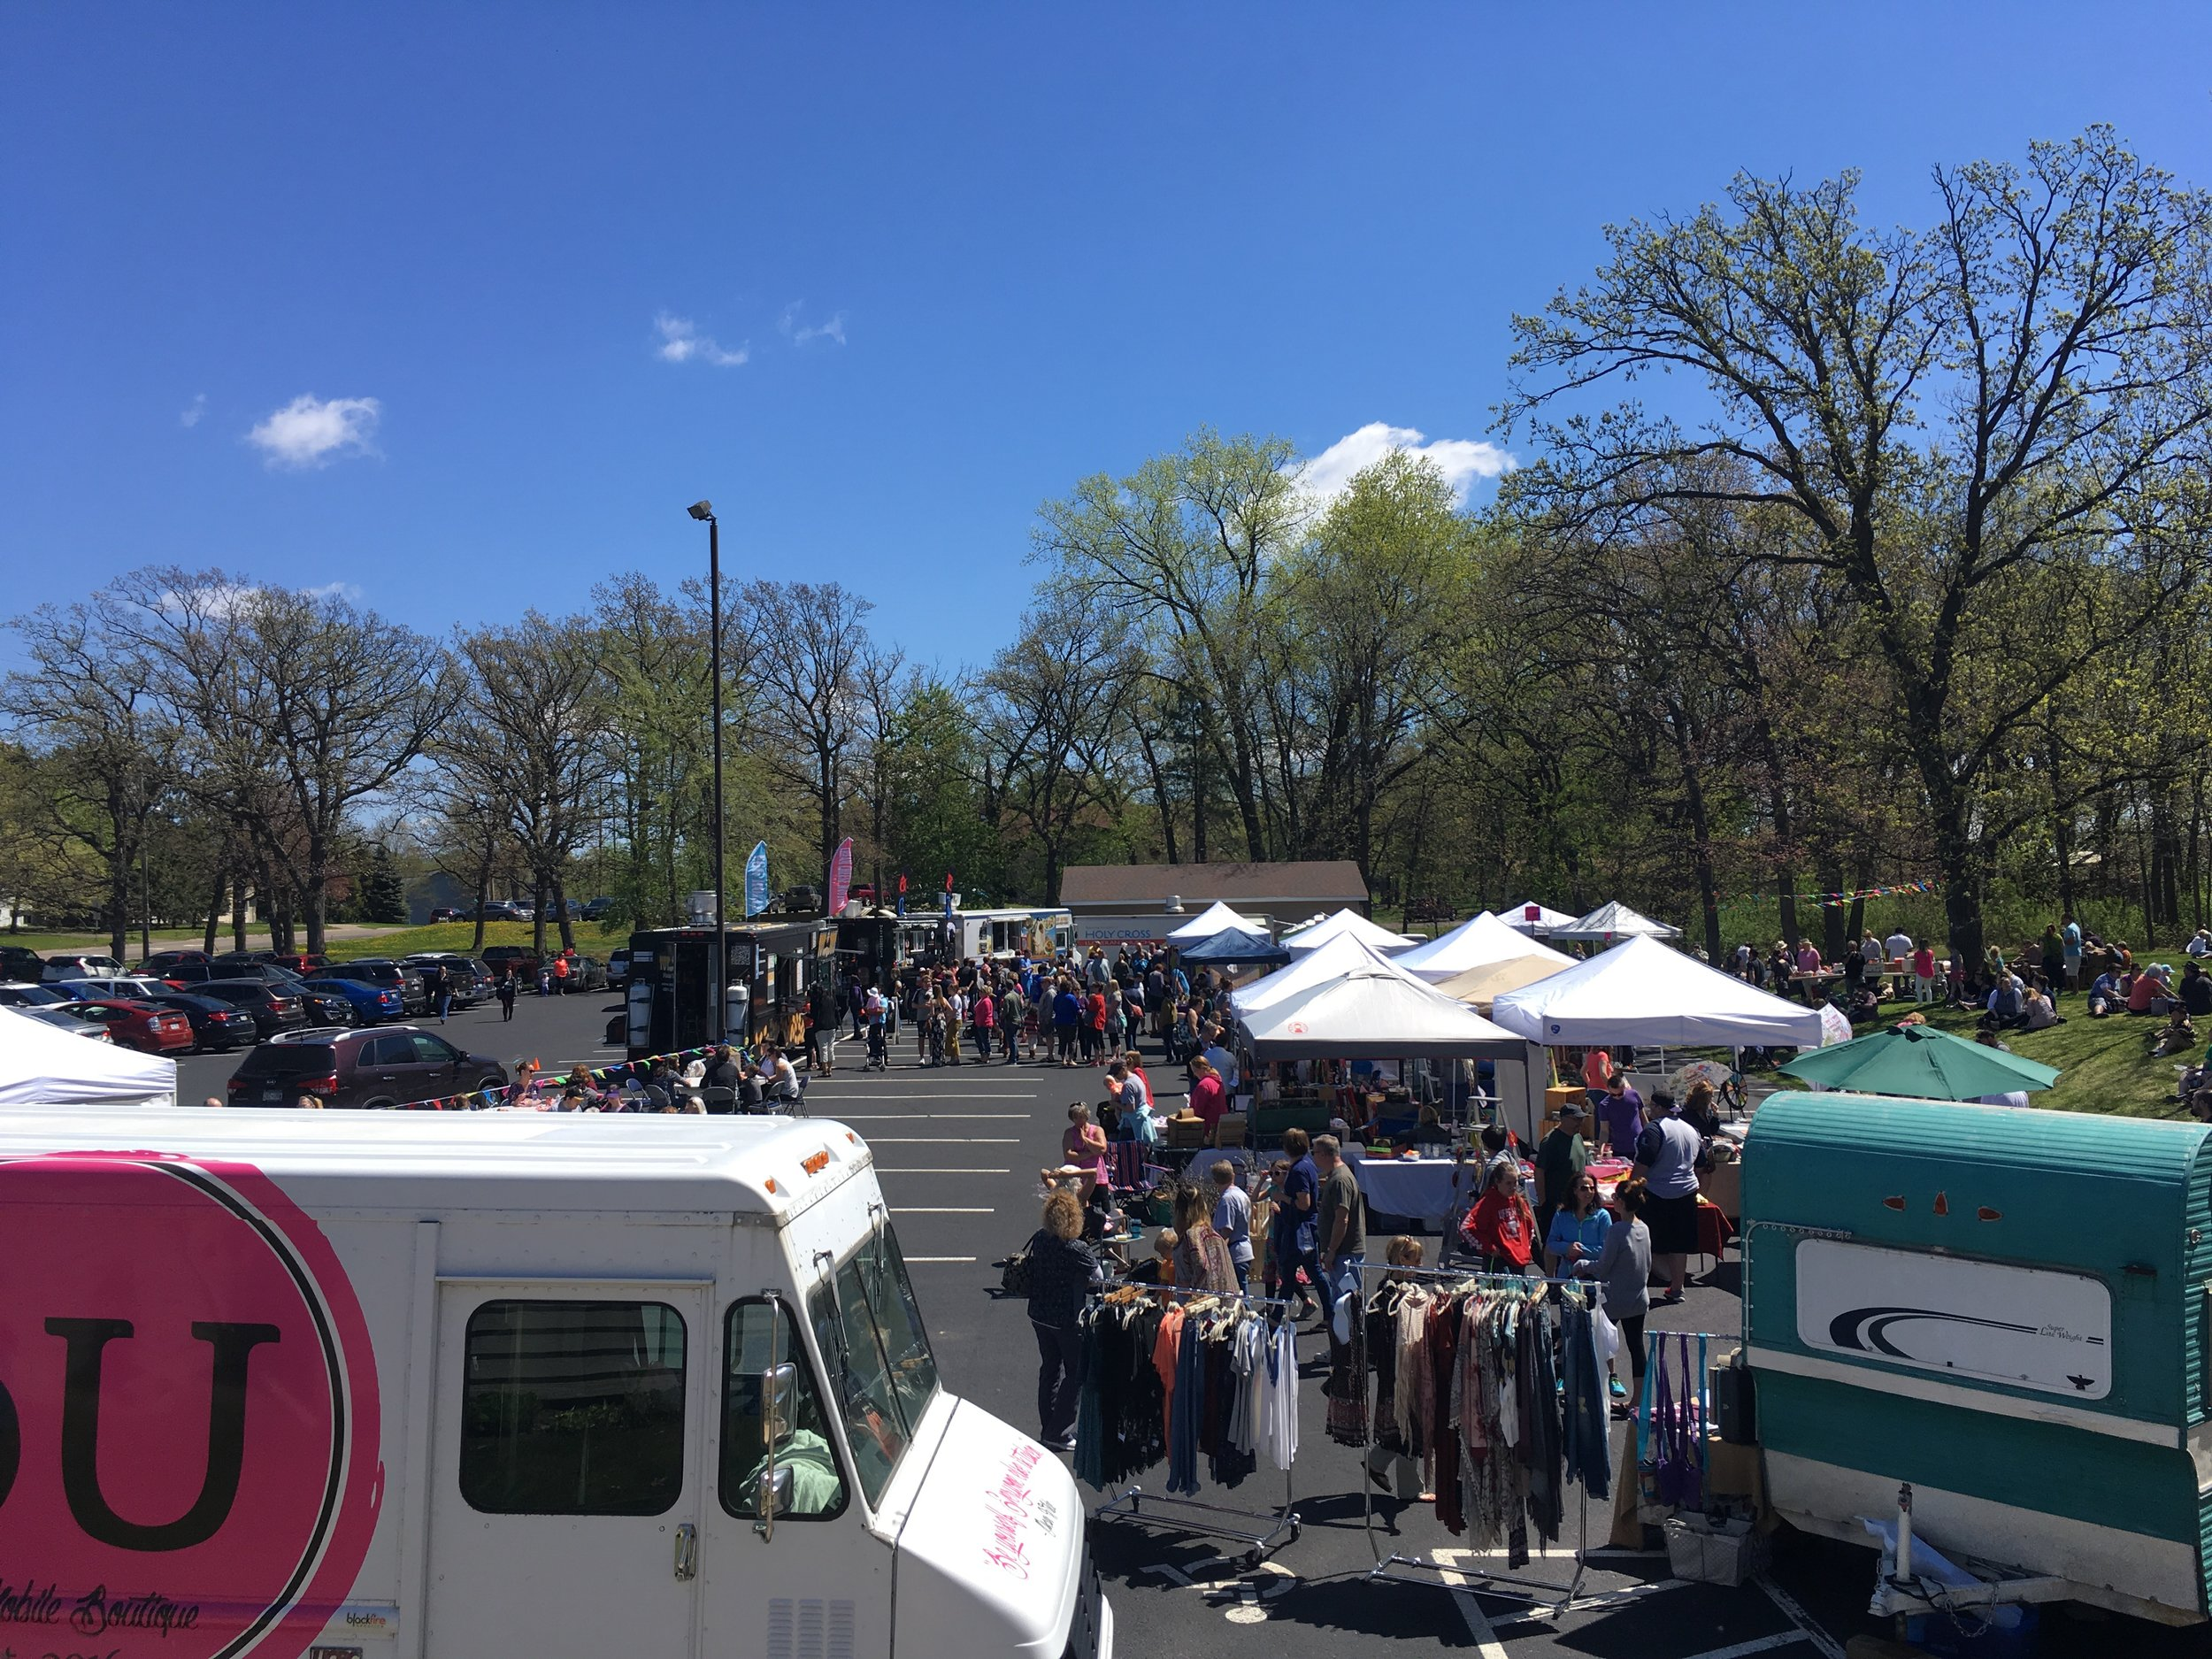 2019 Flea Market & Food Truck Fest - Saturday, May 4 | 10am-4pm